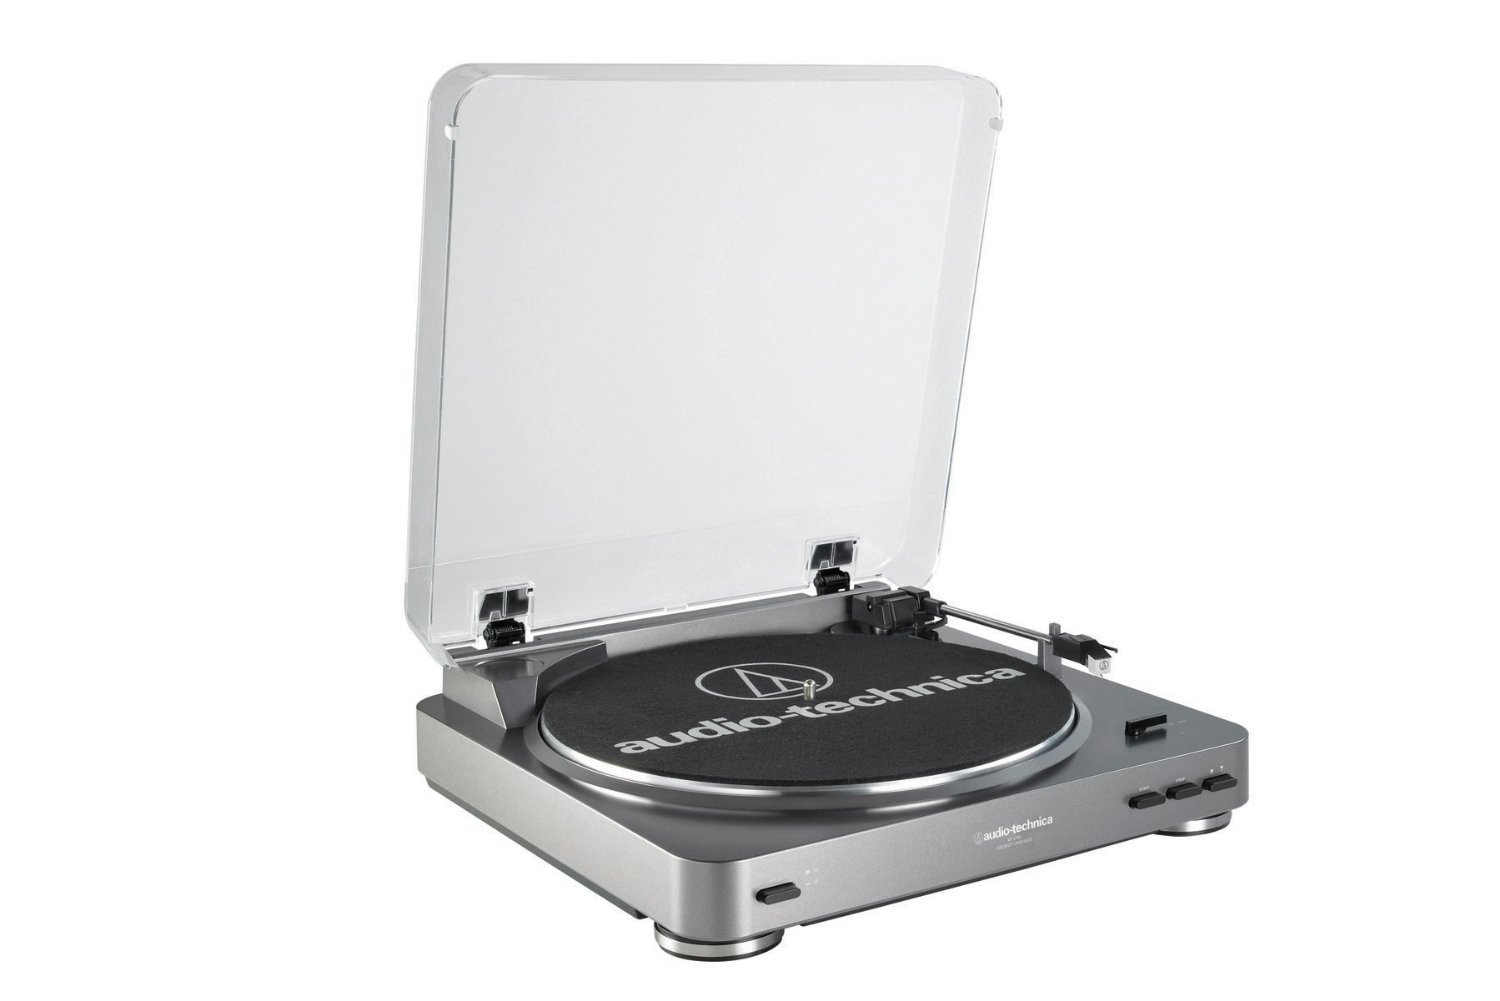 NEW! Audio Technica AT-LP60USB Fully Automatic Belt Driven Turntable with USB Port!